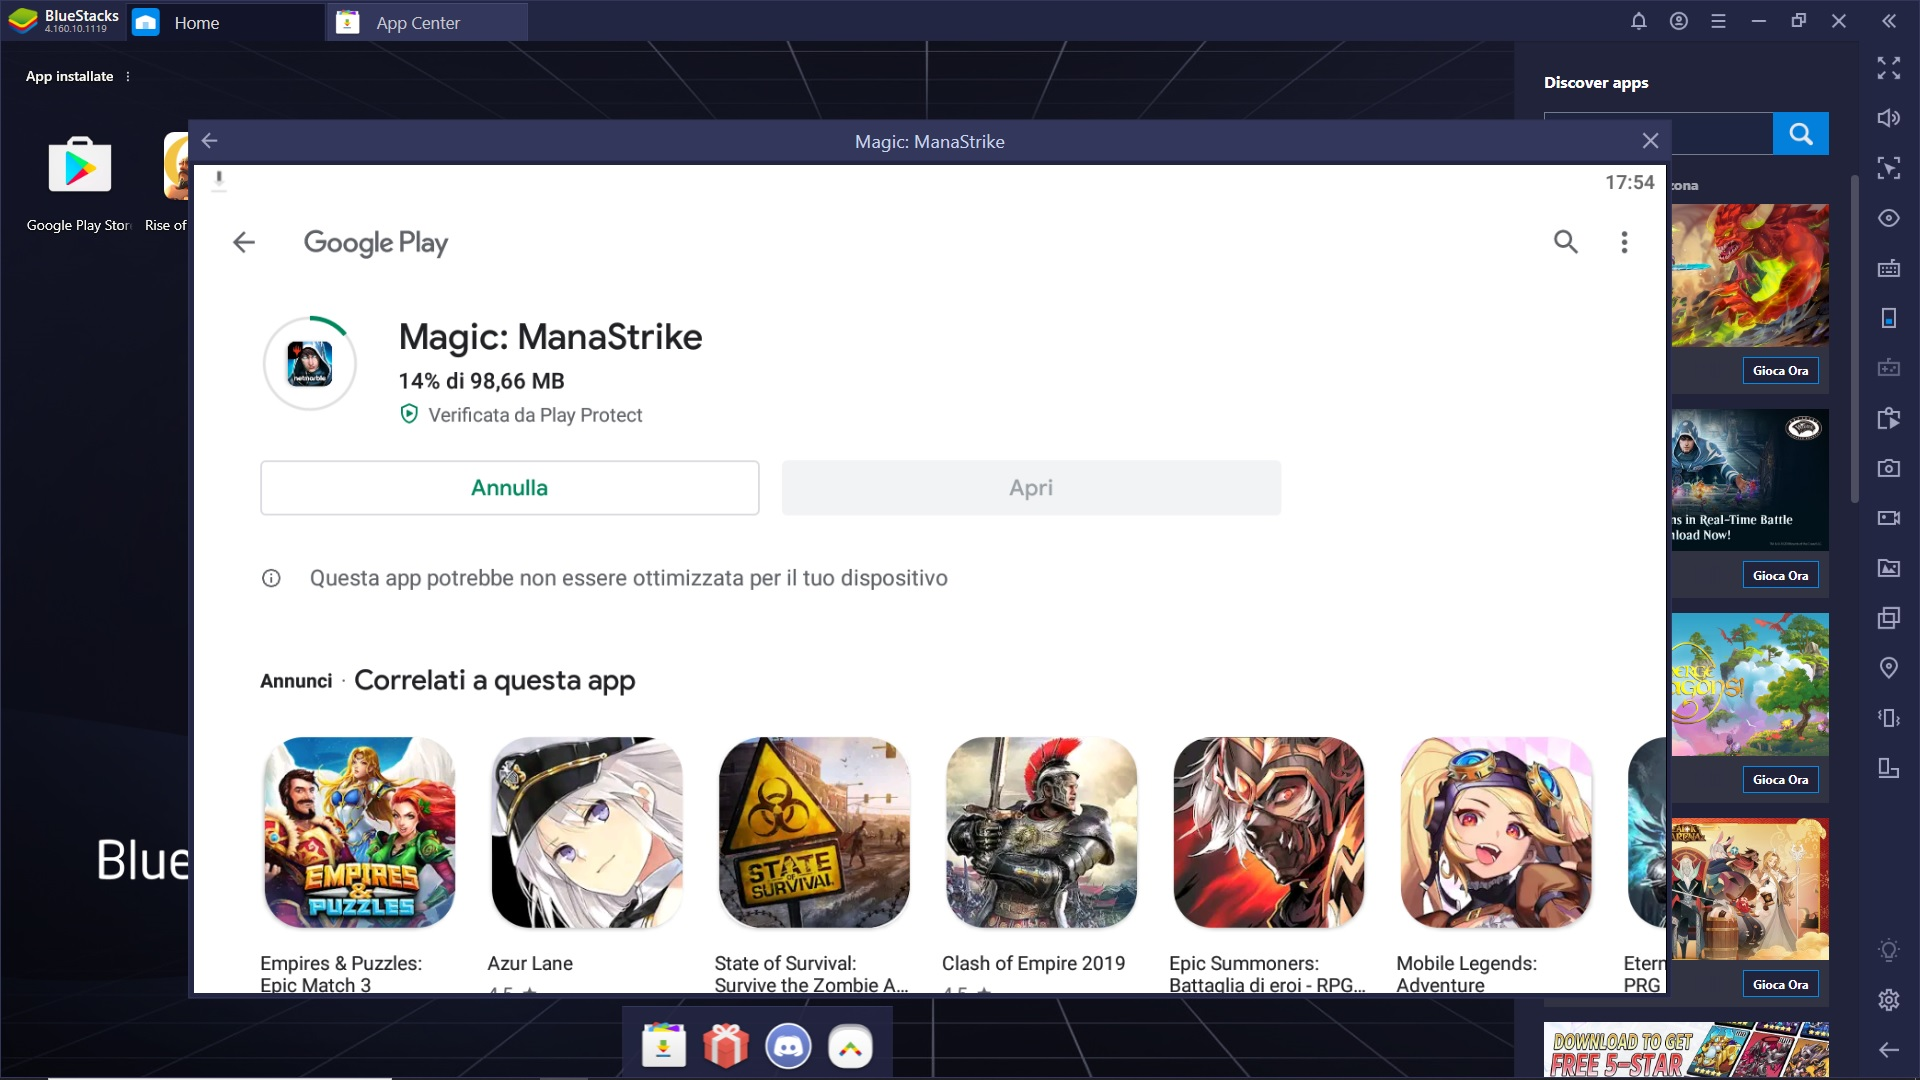 Gioca Magic: ManaStrike con Bluestacks